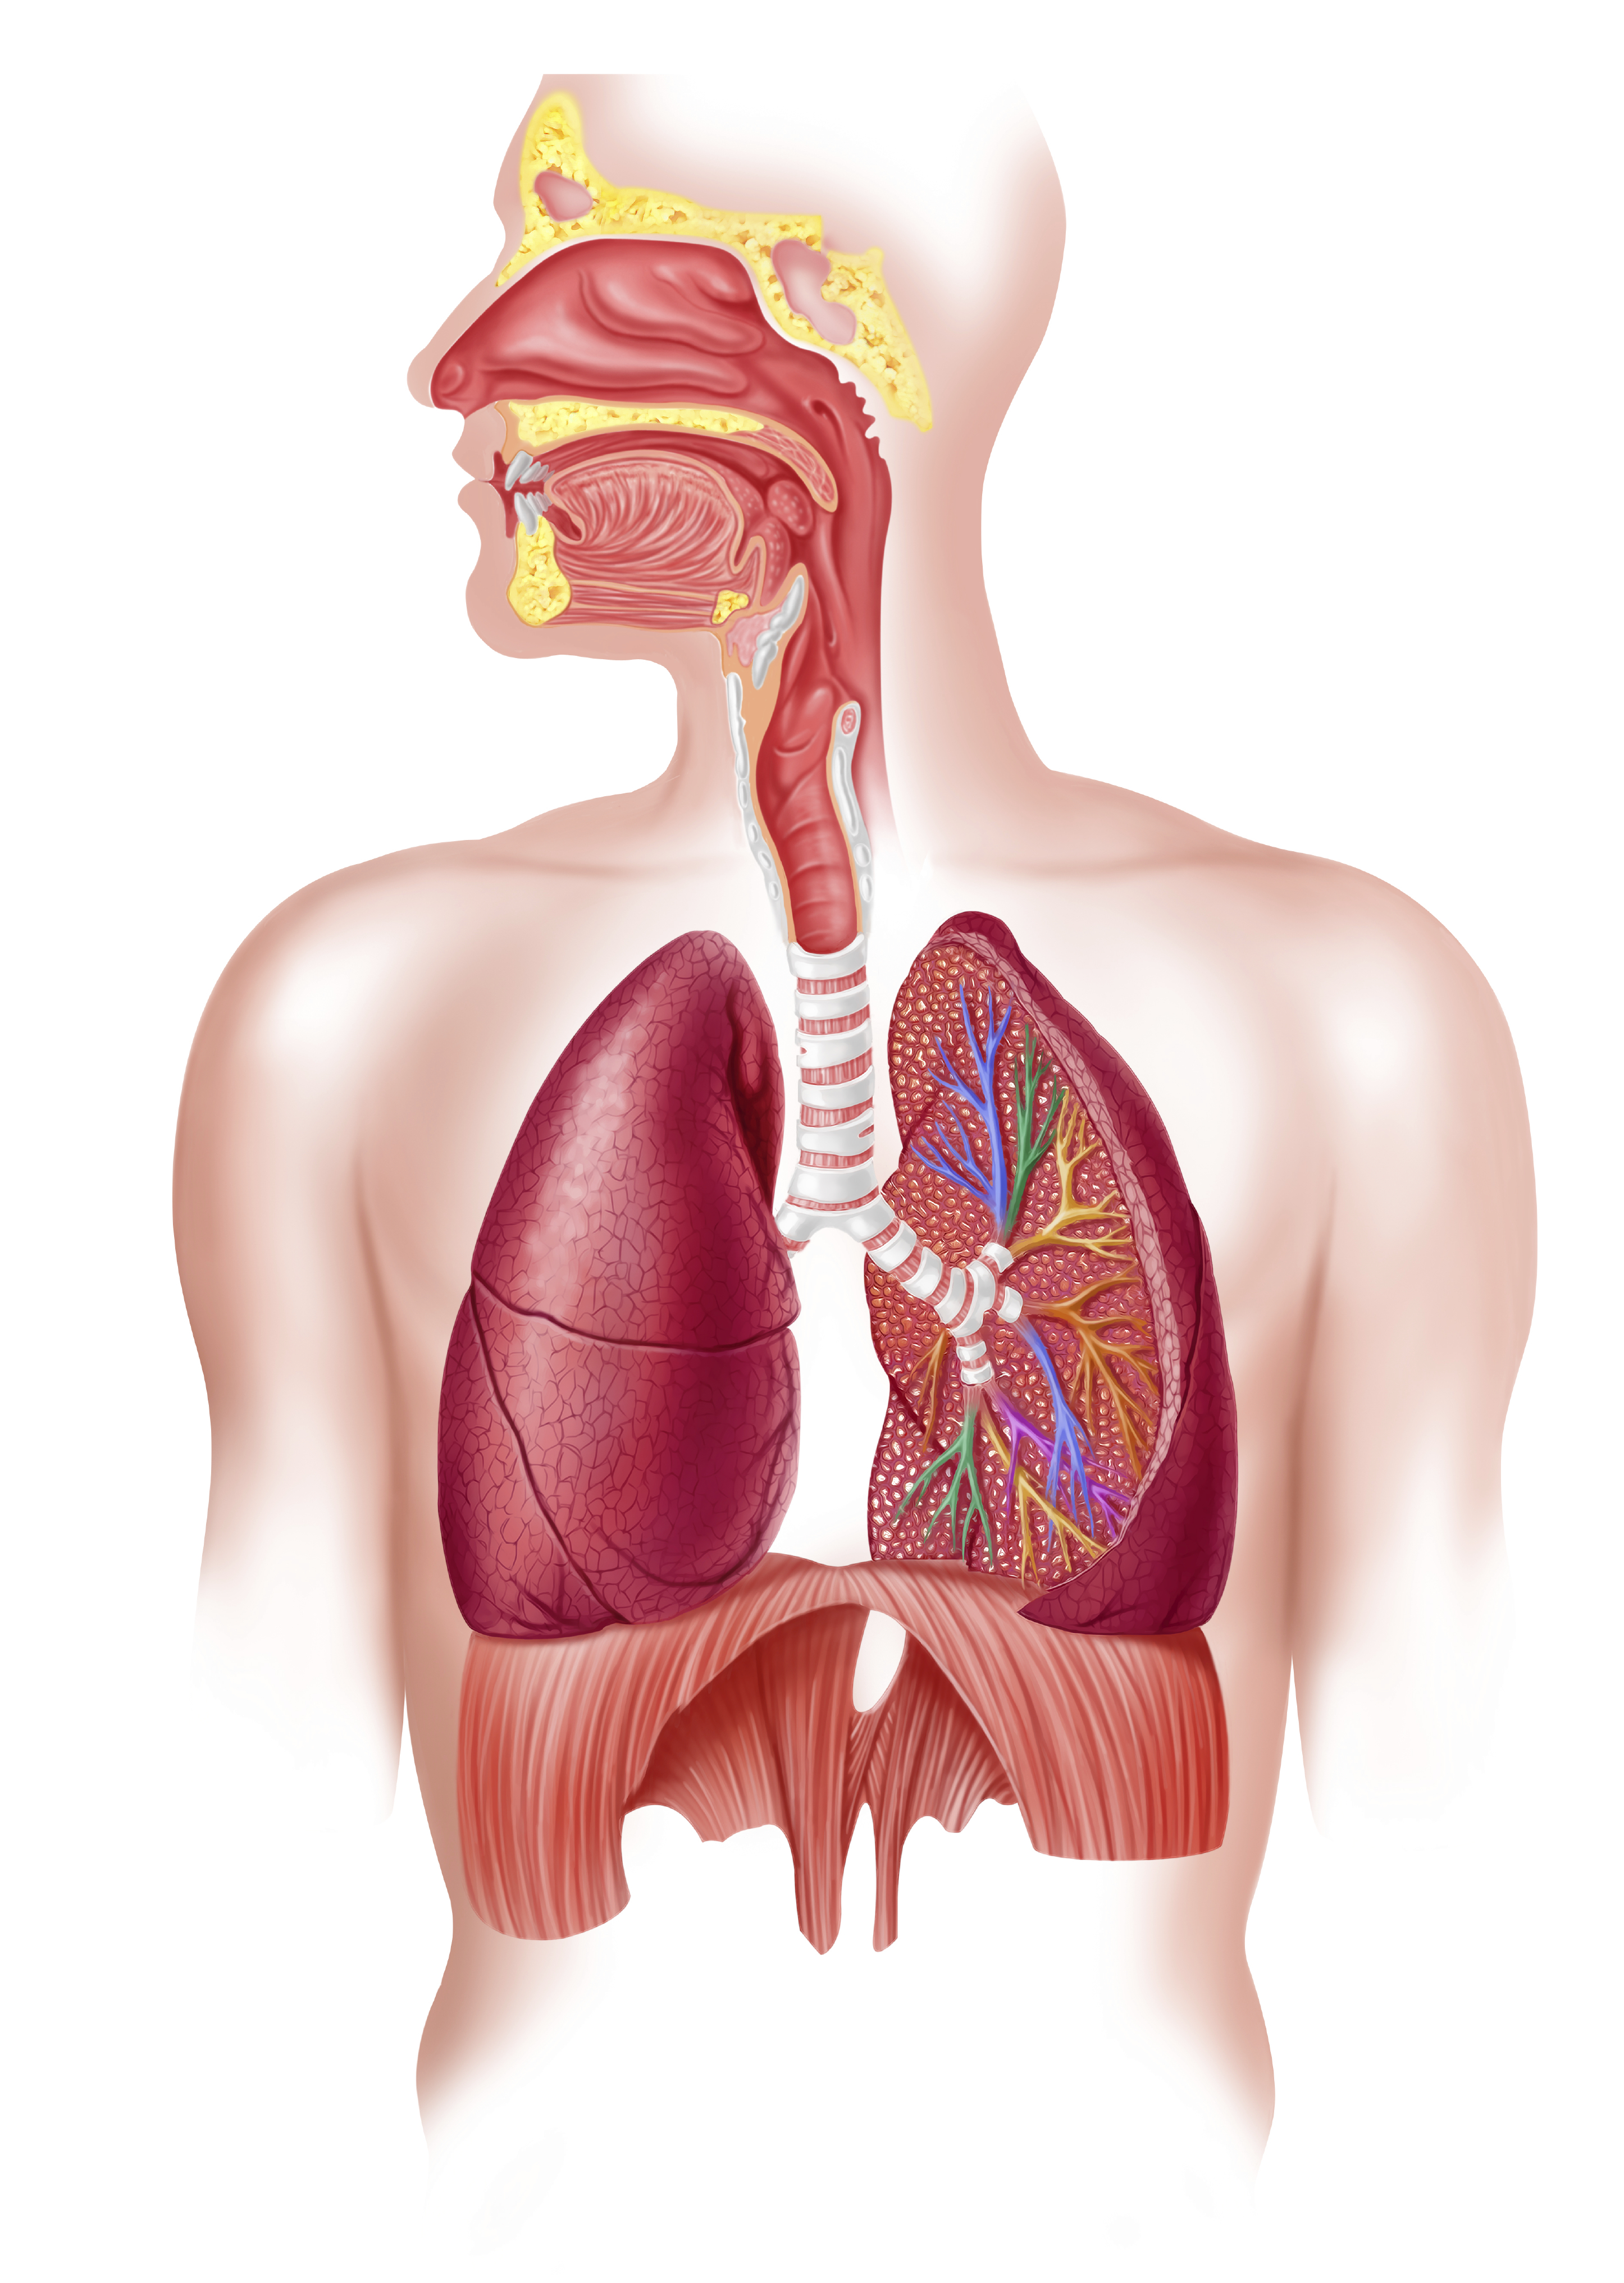 secrets of korean medicine part 16 the benefits of cleaning your lungs prevention. Black Bedroom Furniture Sets. Home Design Ideas